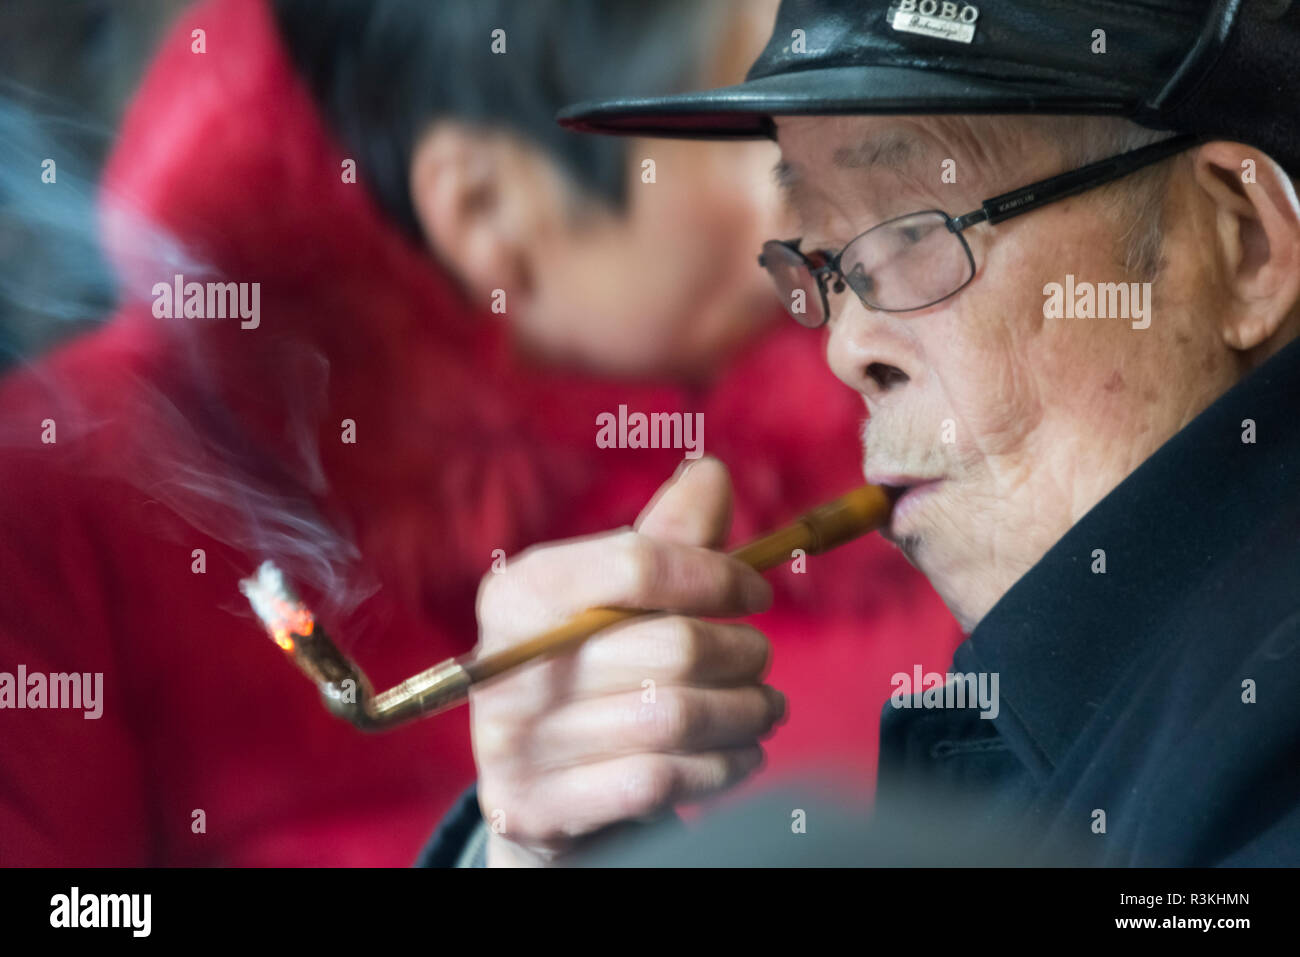 4775a083d Old man smoking a pipe in an old teahouse, Pengzhen, Chengdu, Sichuan  Province, China